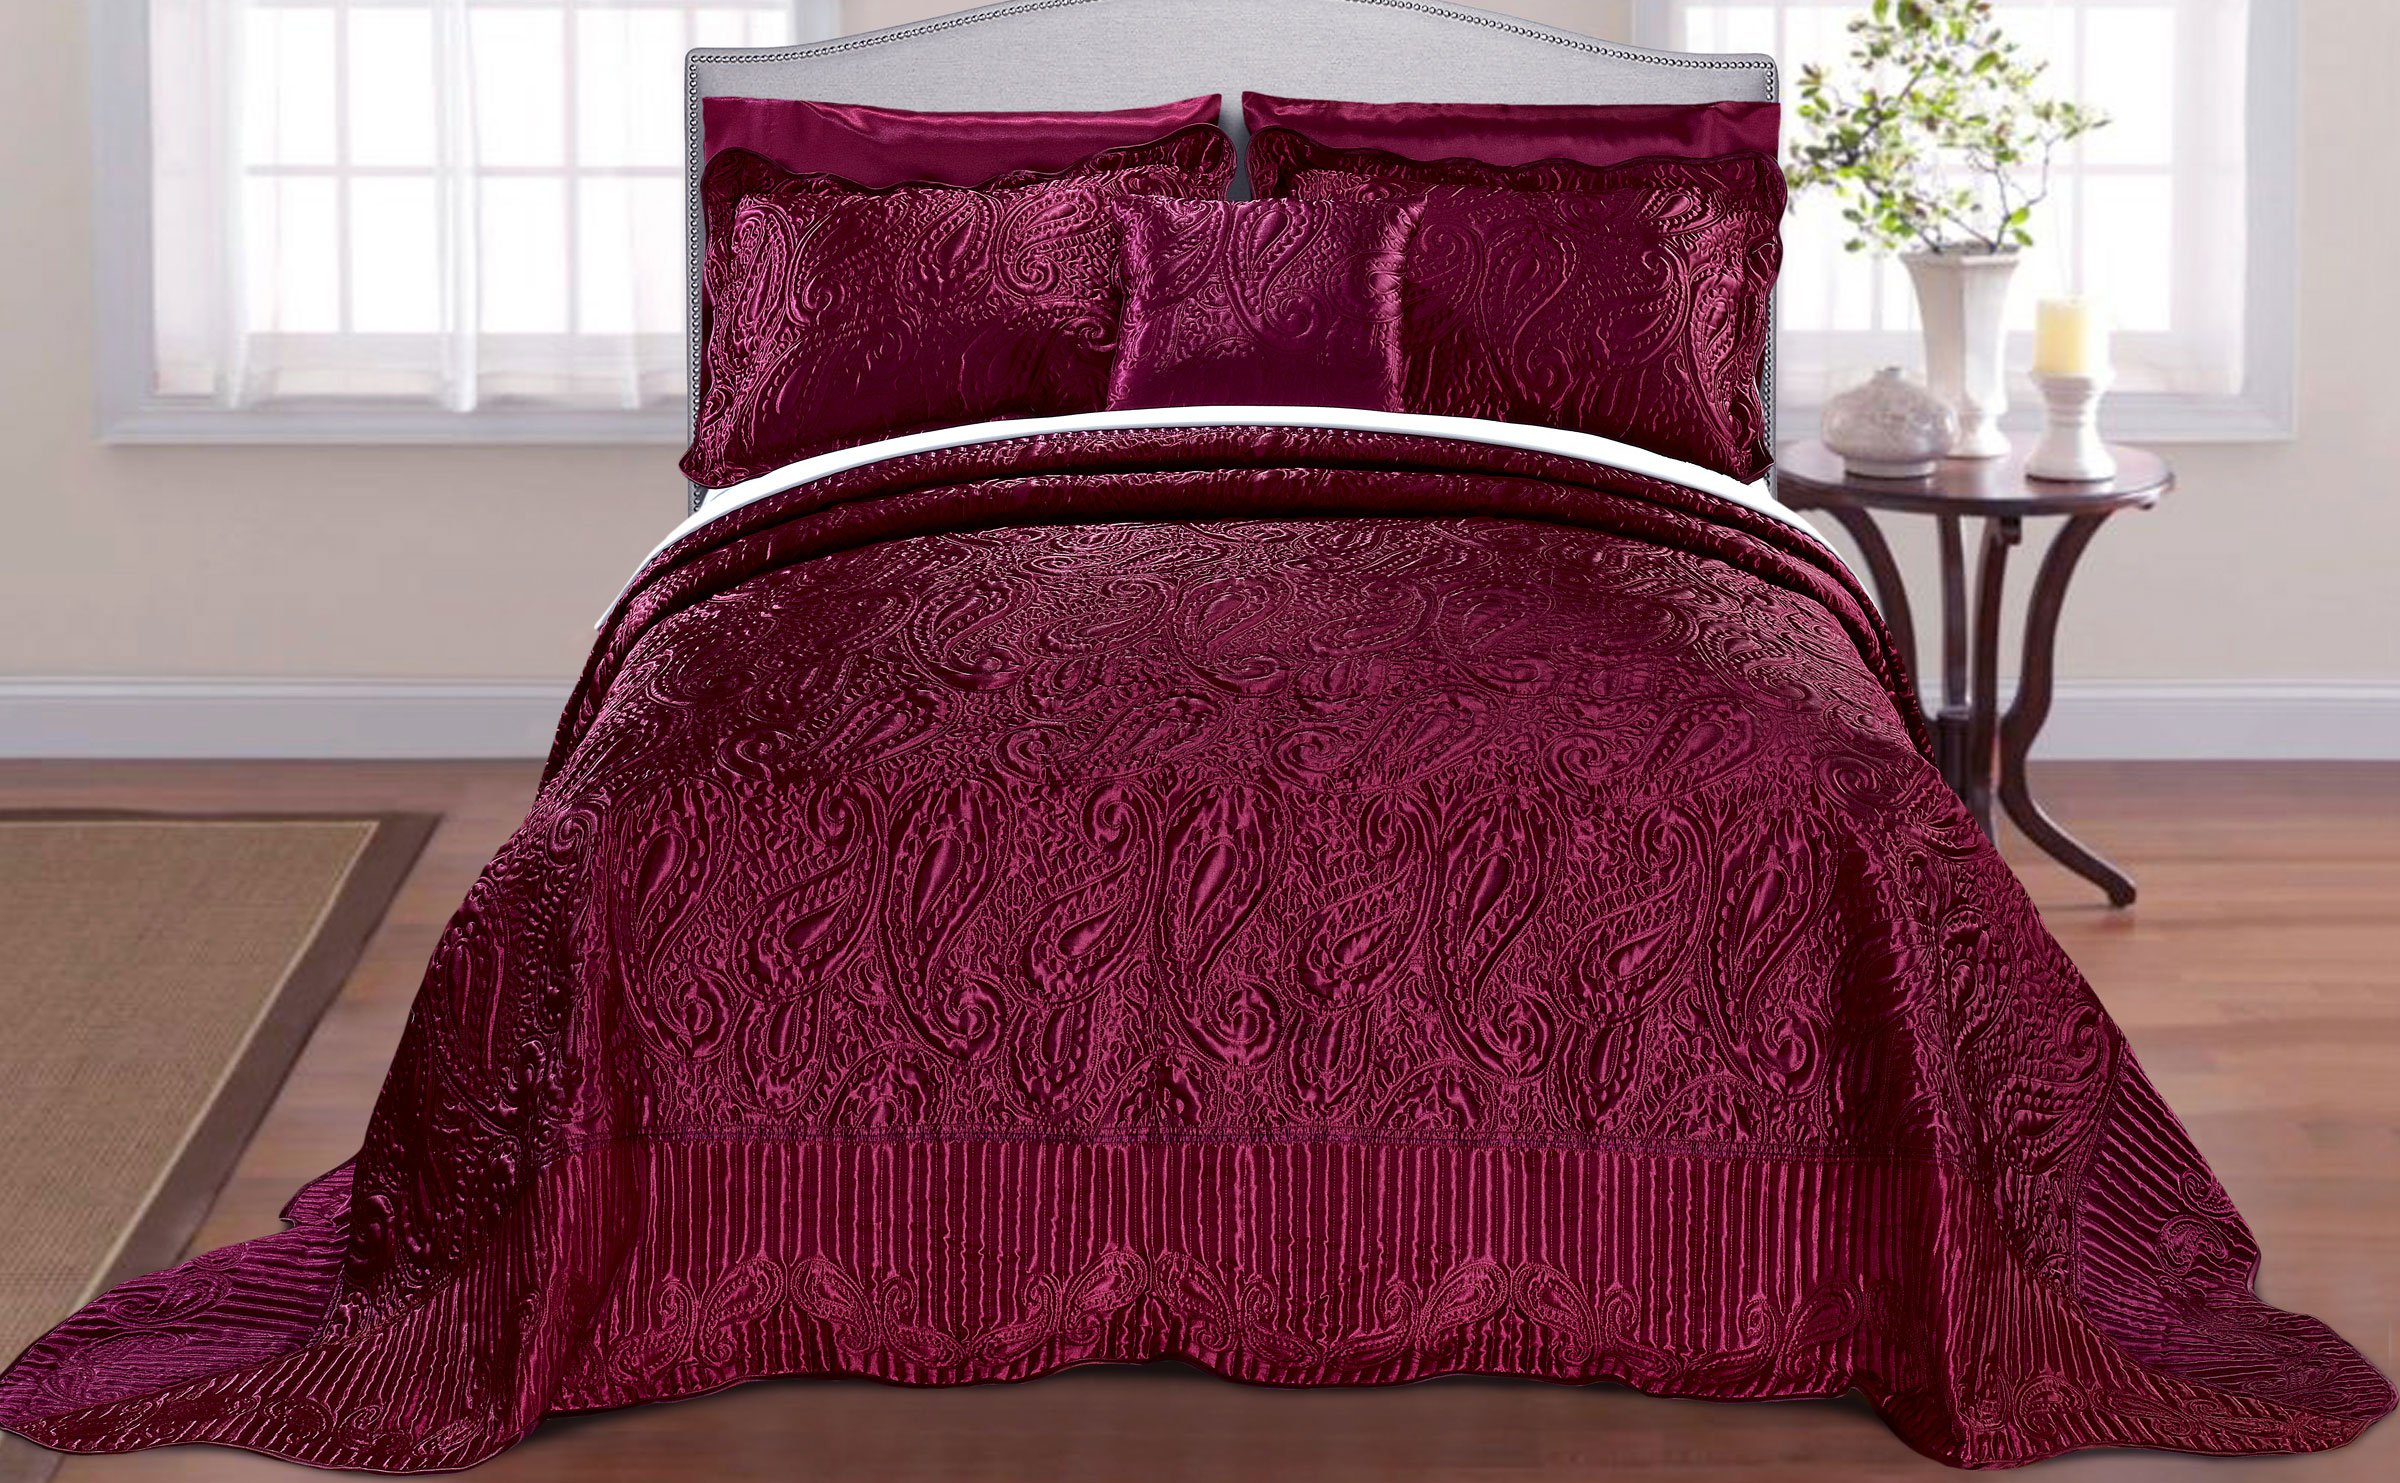 Home Soft Things Serenta Quilted Satin 4 Piece Bedspread Set, King, Burgundy by Home Soft Things (Image #3)